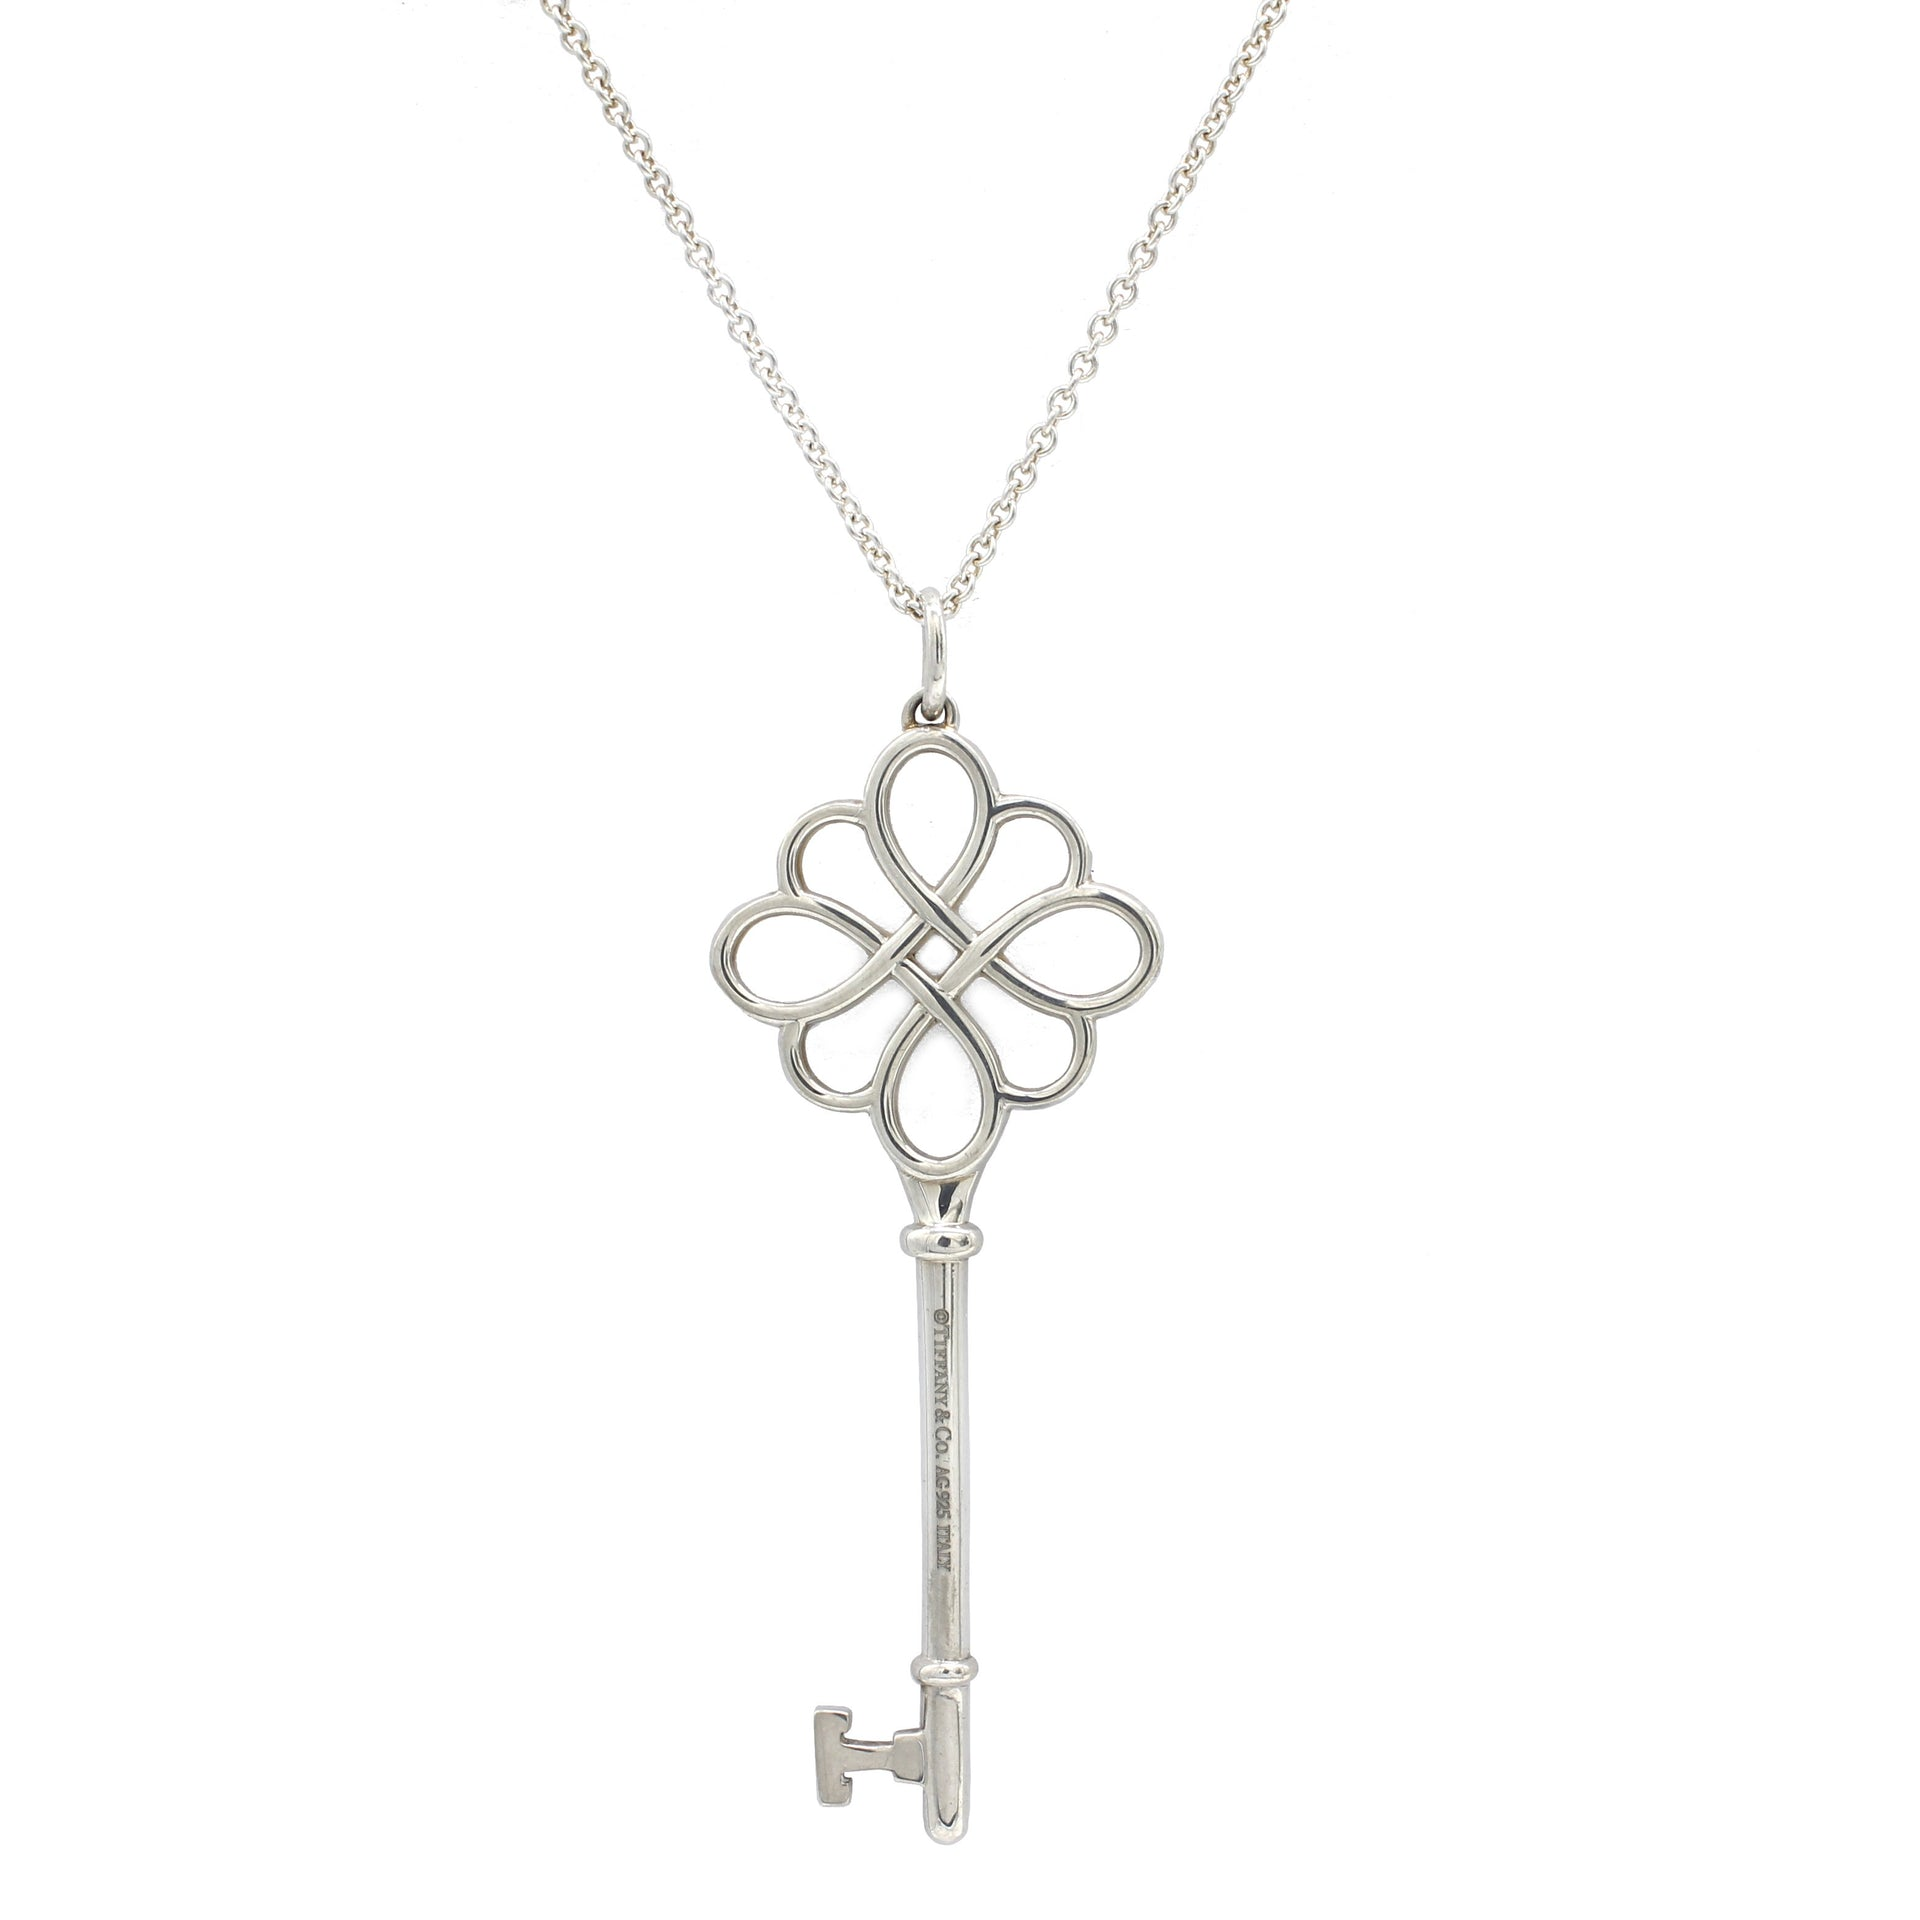 Knot Key Necklace Silver